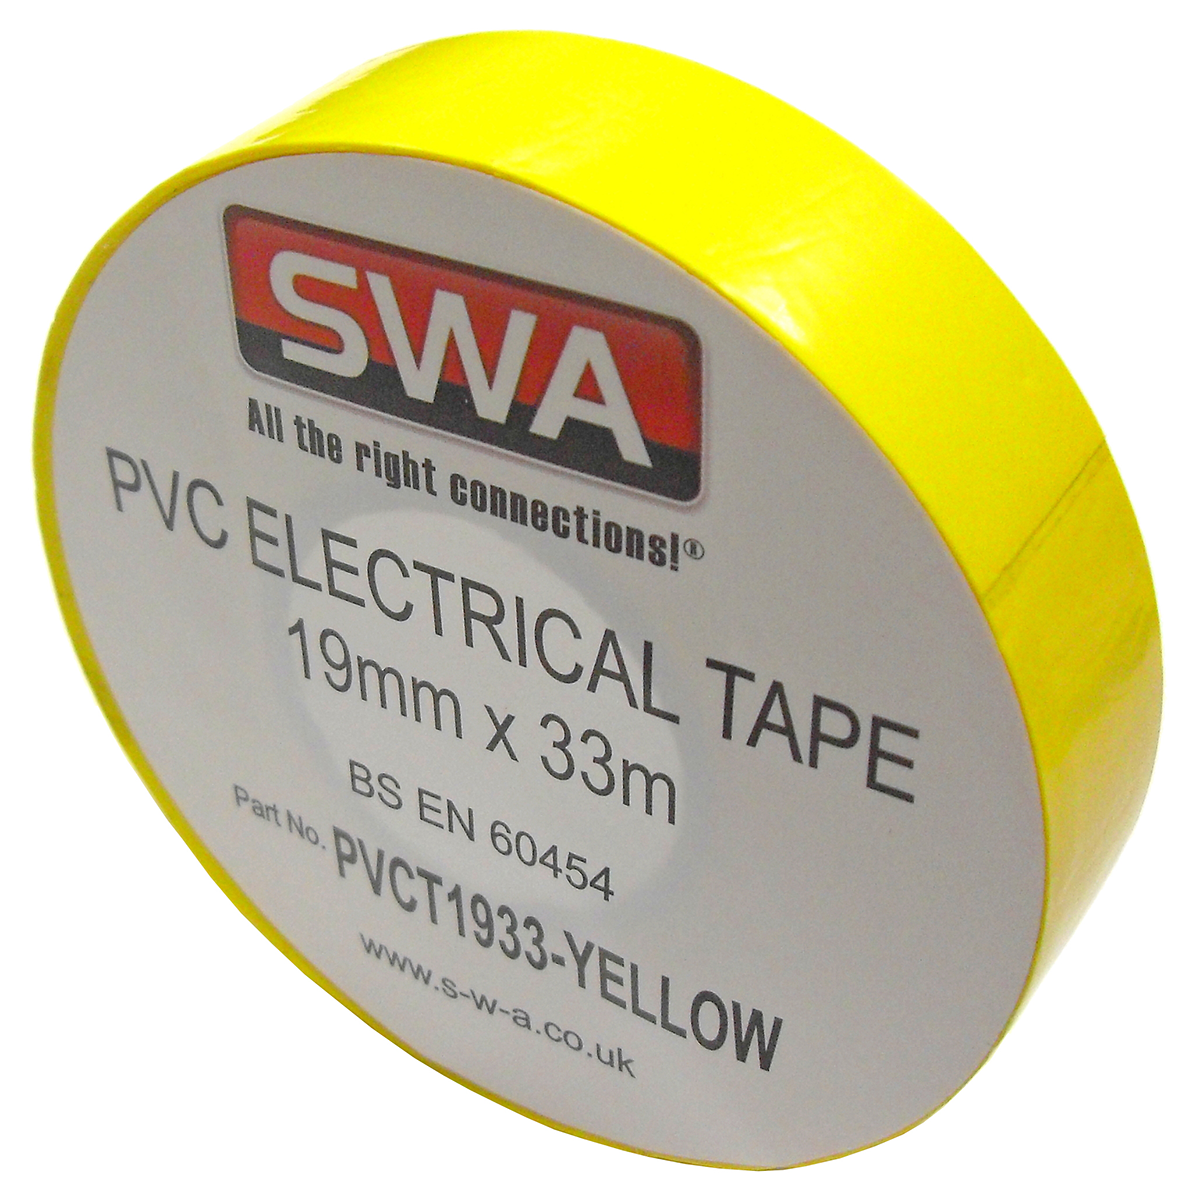 Insulating Tape Cable Management Tradesparky Pvc Electrical Insulation Wire With Certificate Of Swa Pvct1933 Y Yel